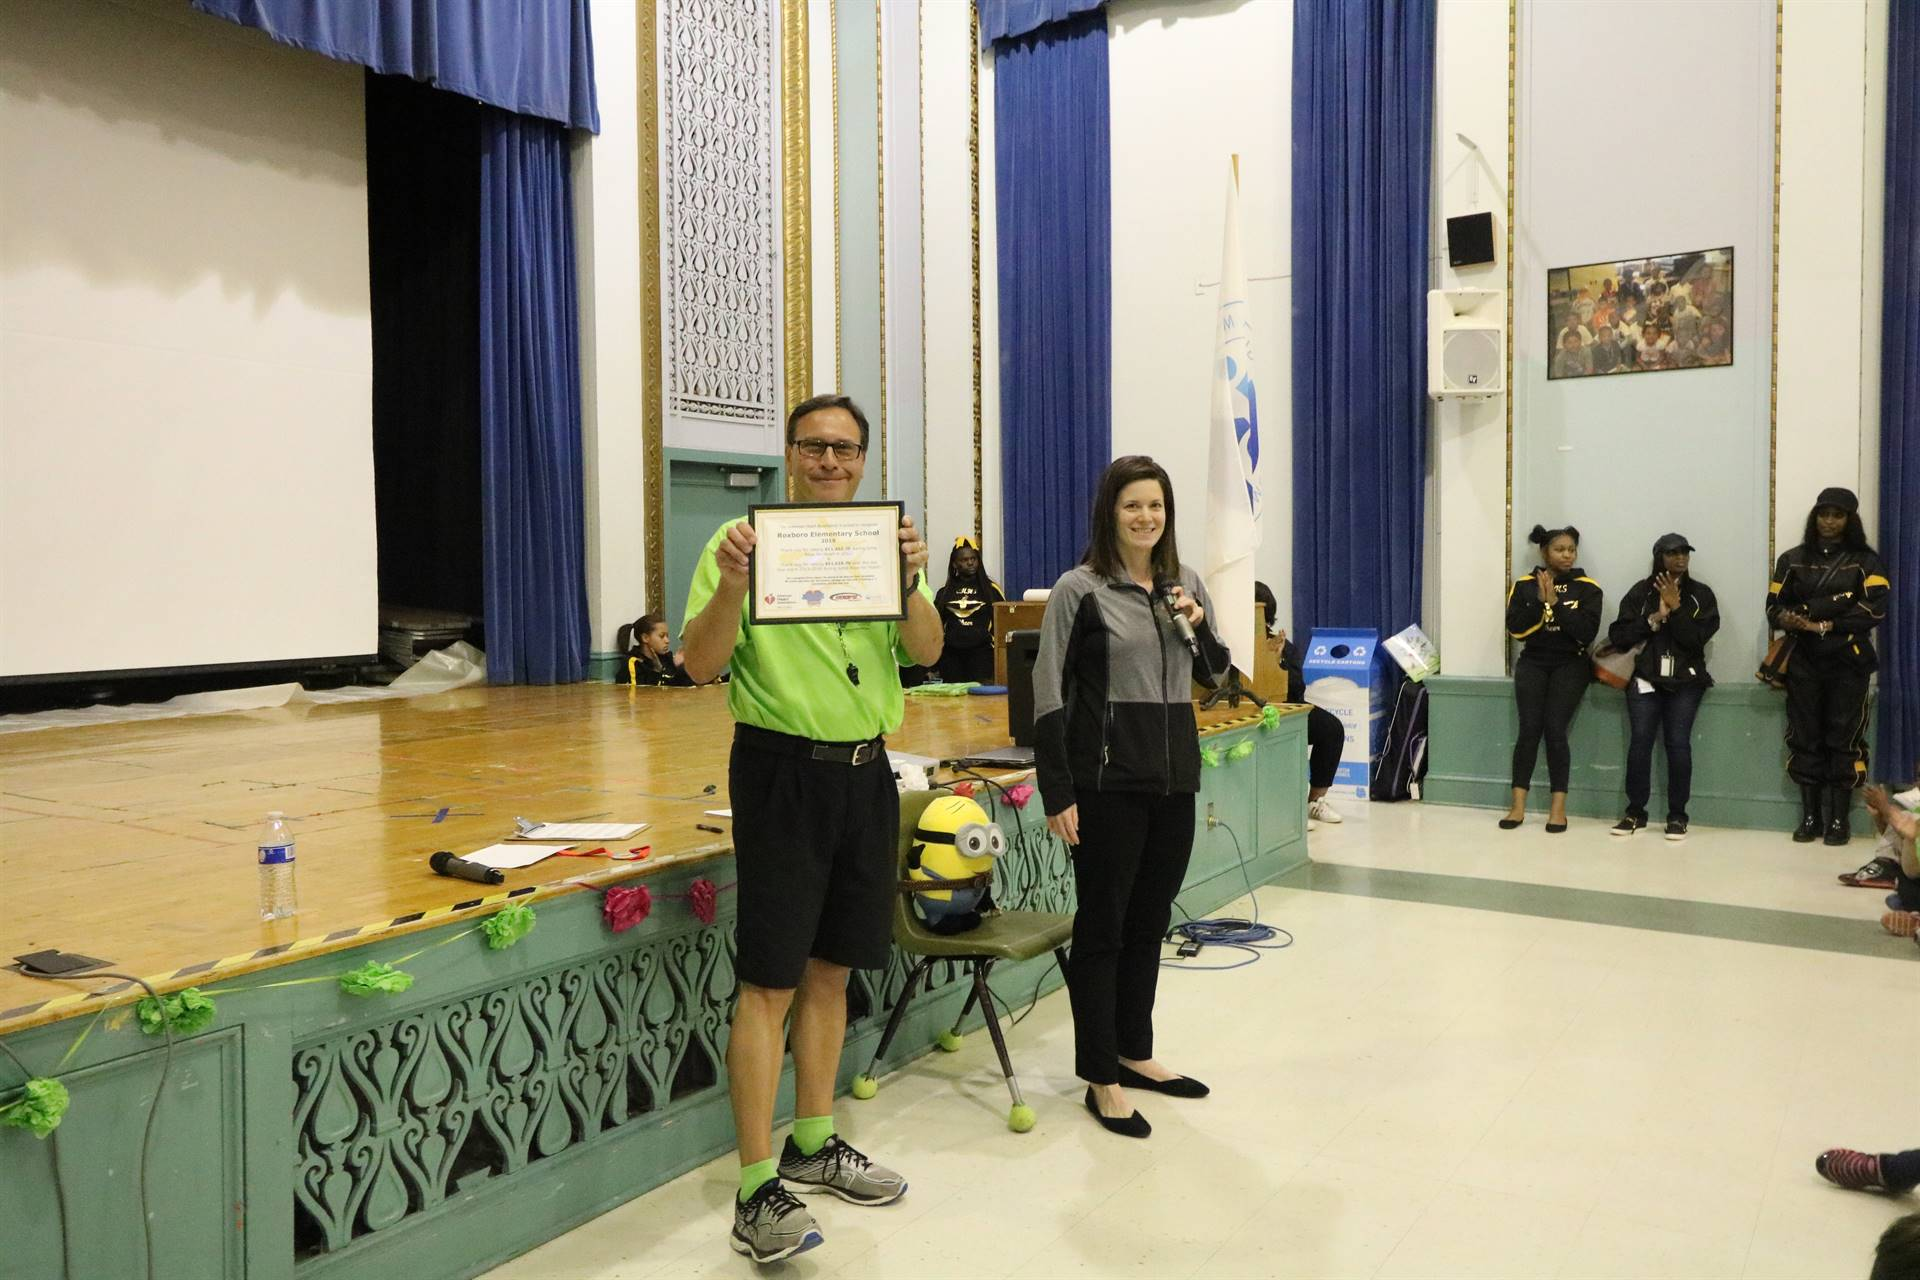 Vince Nemeth and Valerie Weber with certificate